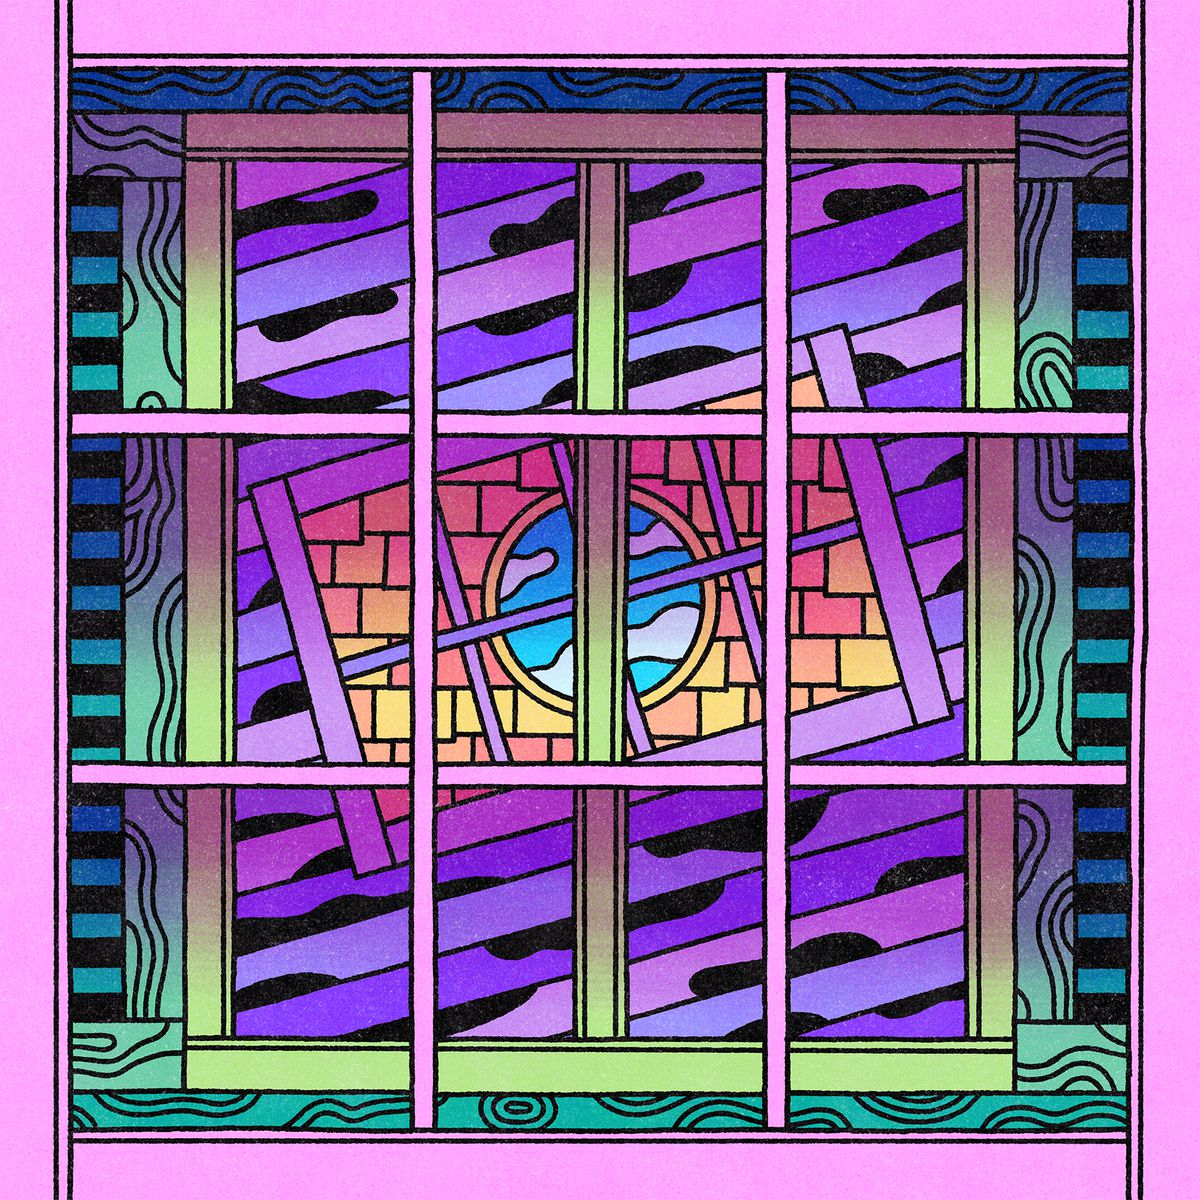 A series of psychedelic windows, one in front of the other. A visual metaphor for blocking out negative vibes. Illustration.